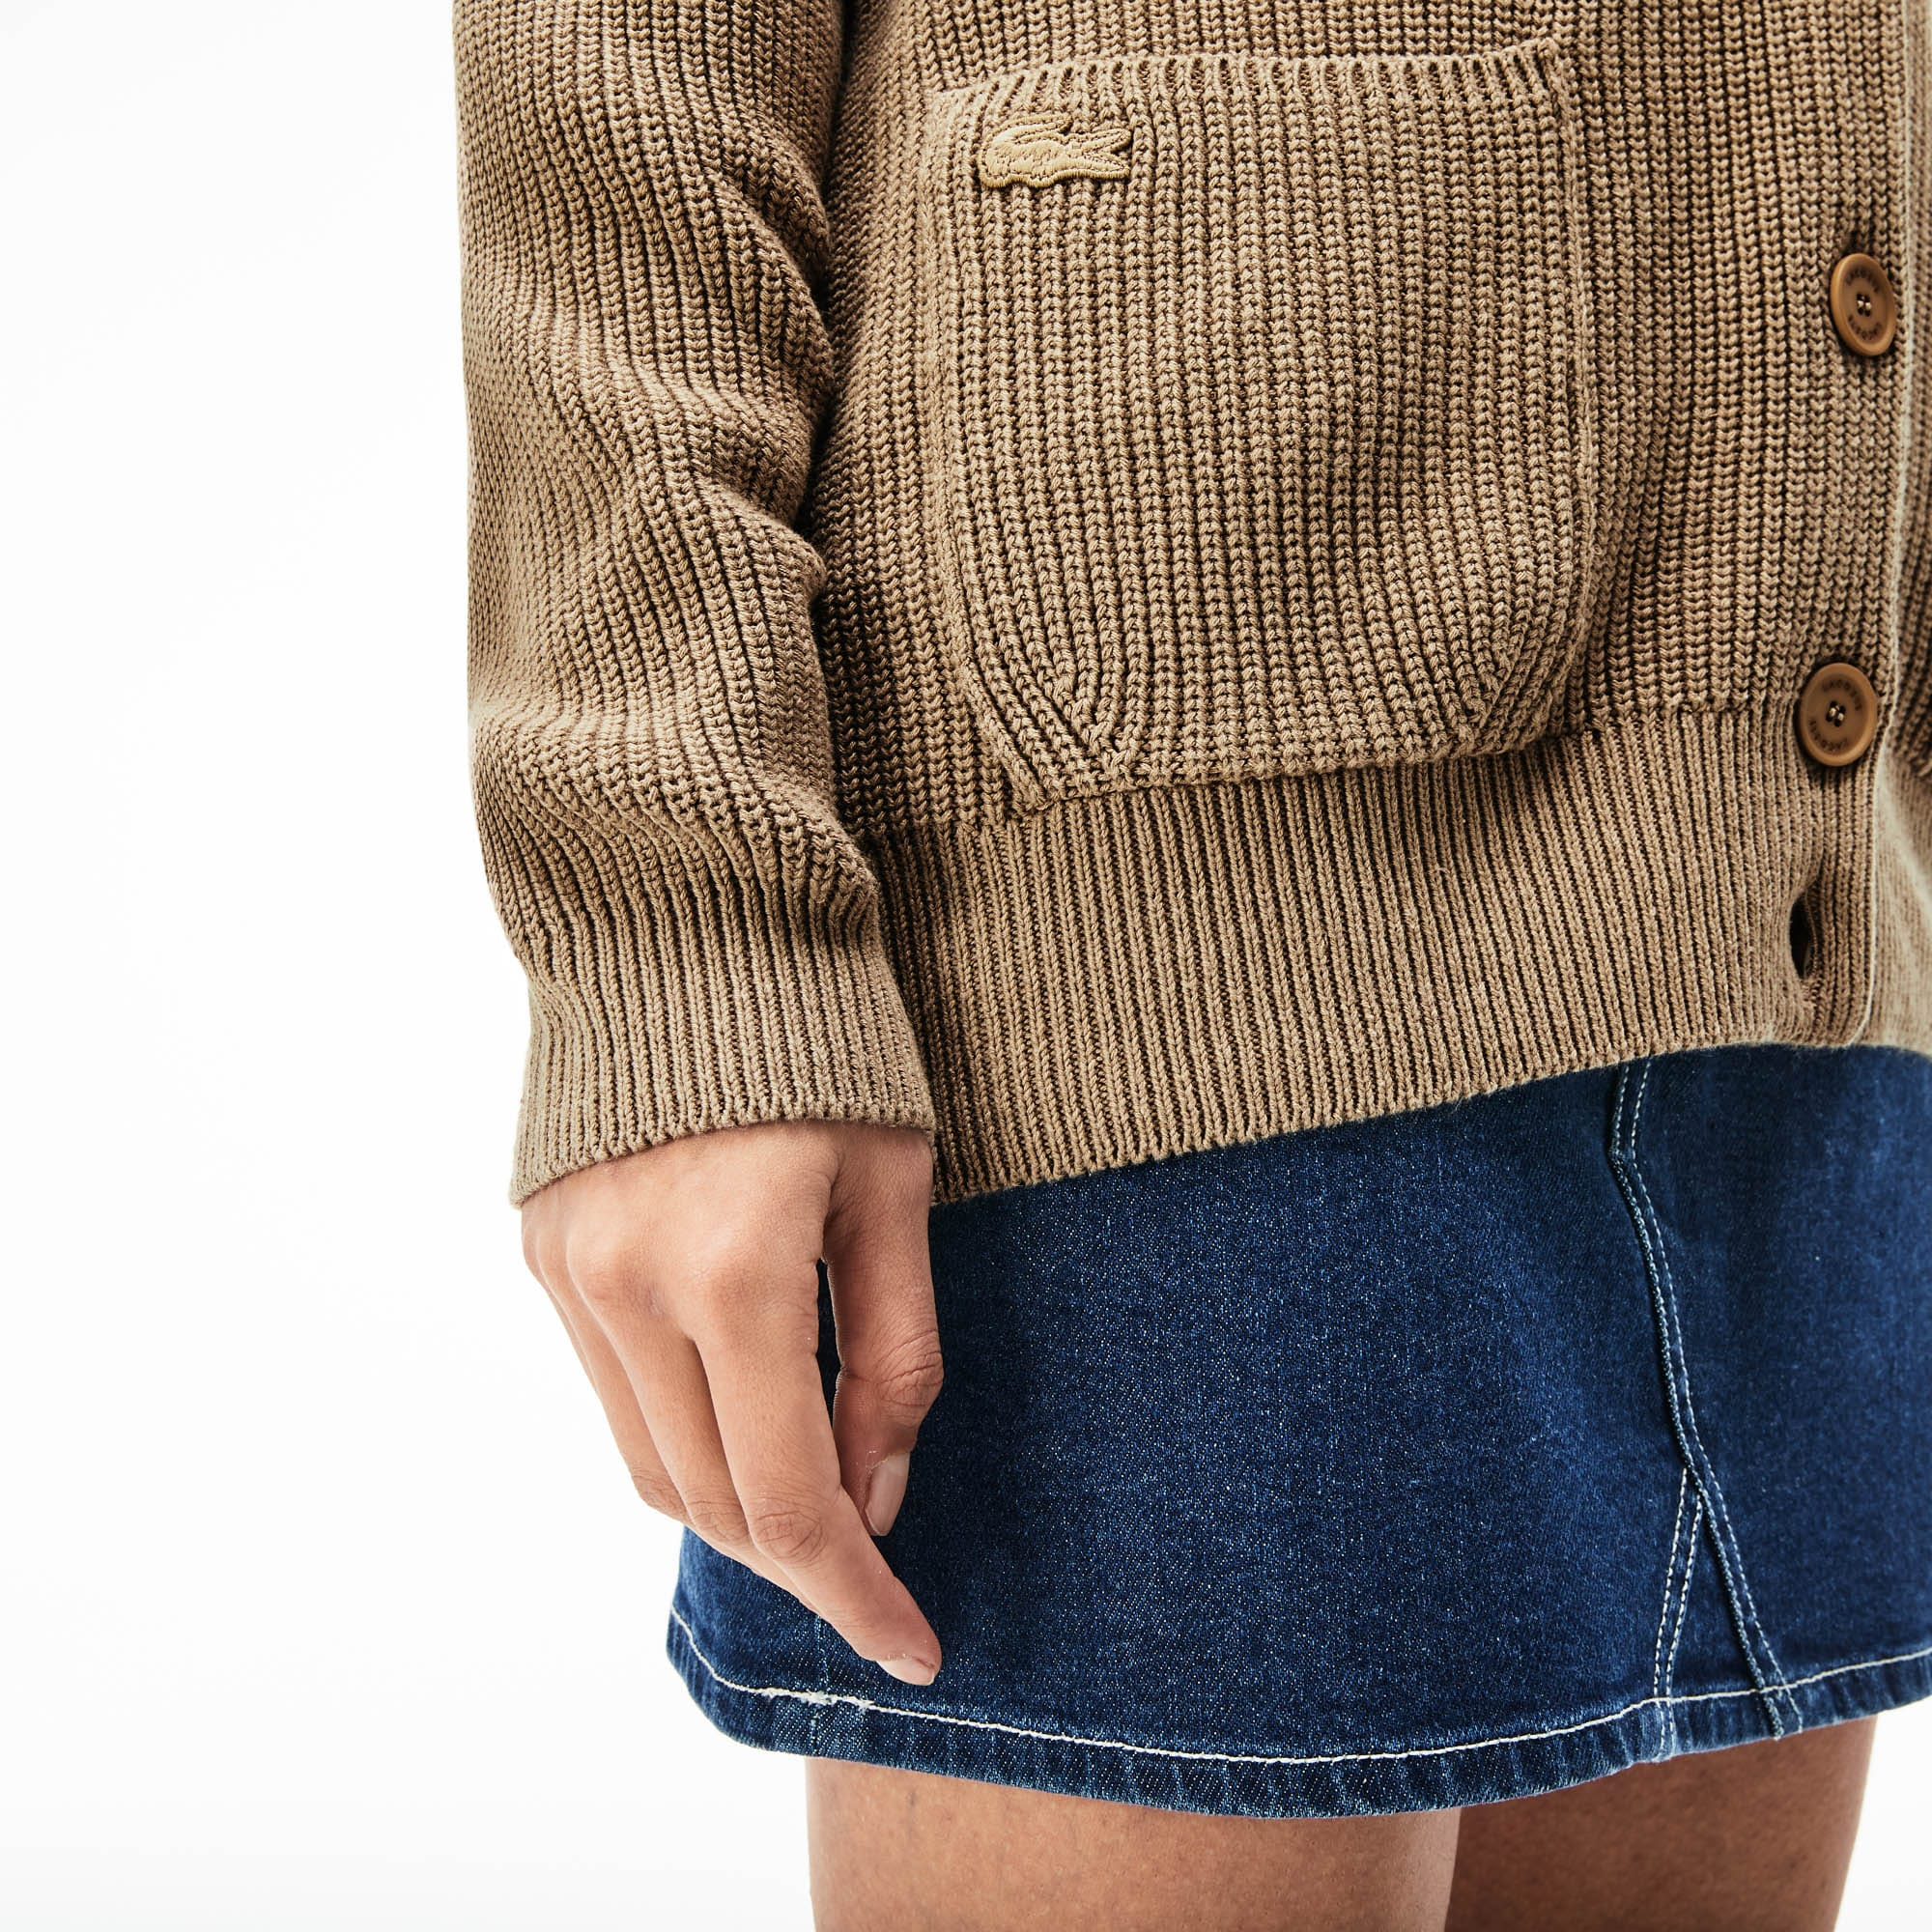 Women's Pockets Ribbed Cotton And Linen Cardigan